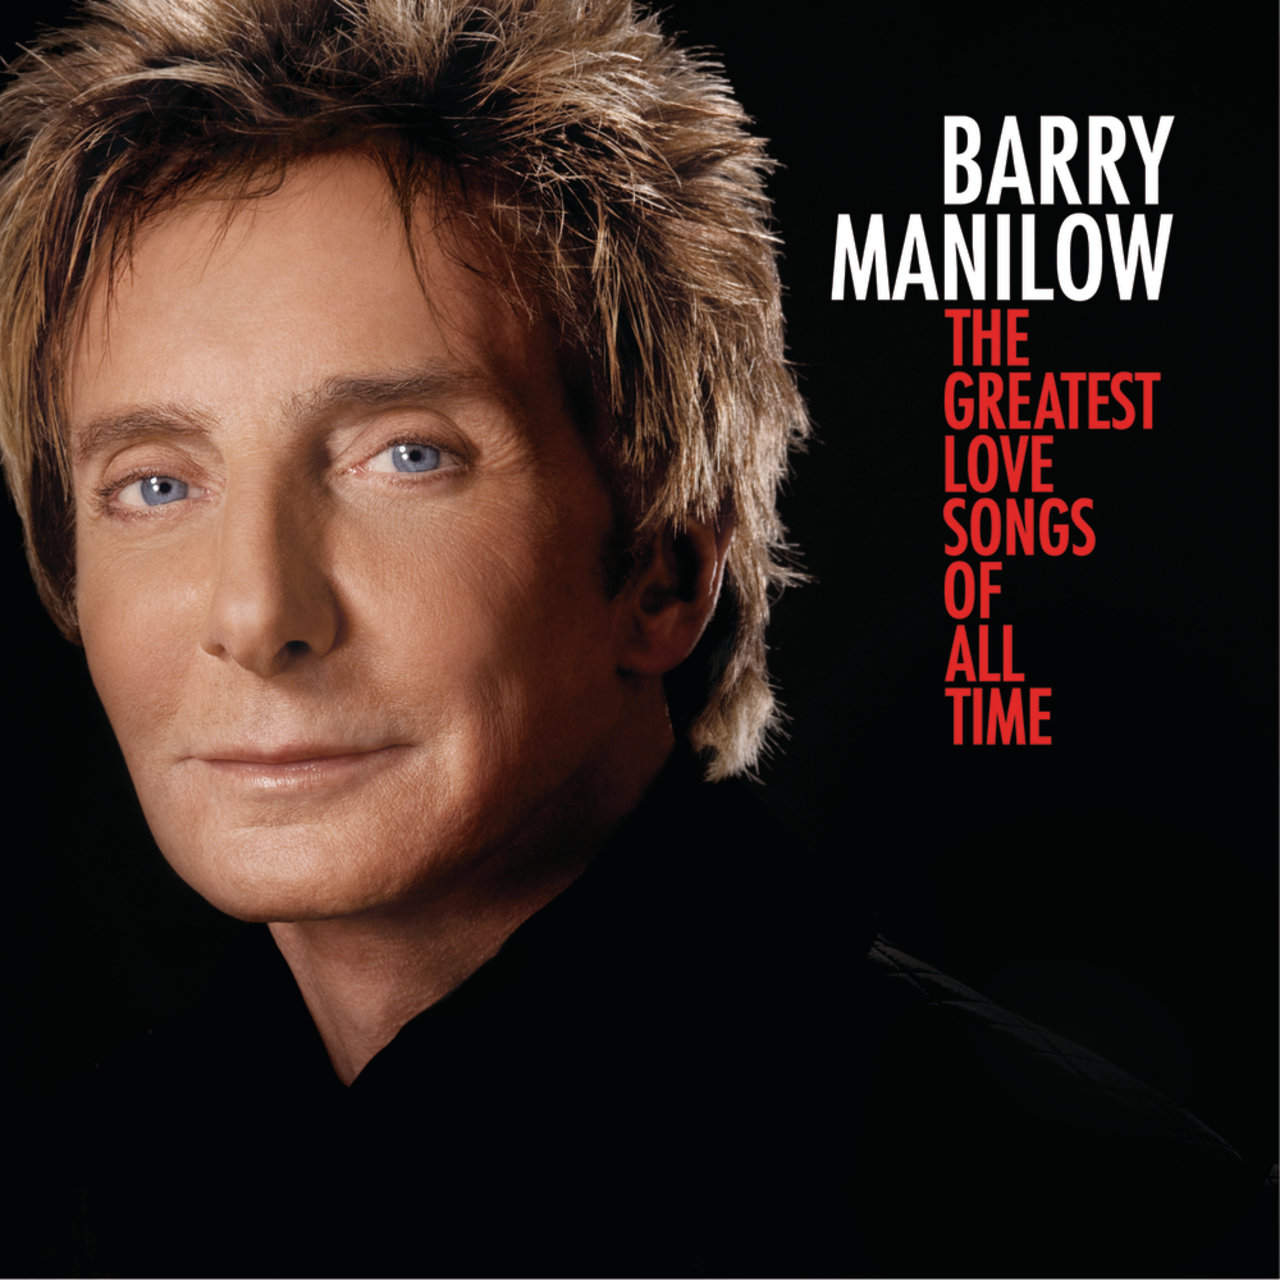 TIDAL: Listen to Barry Manilow on TIDAL